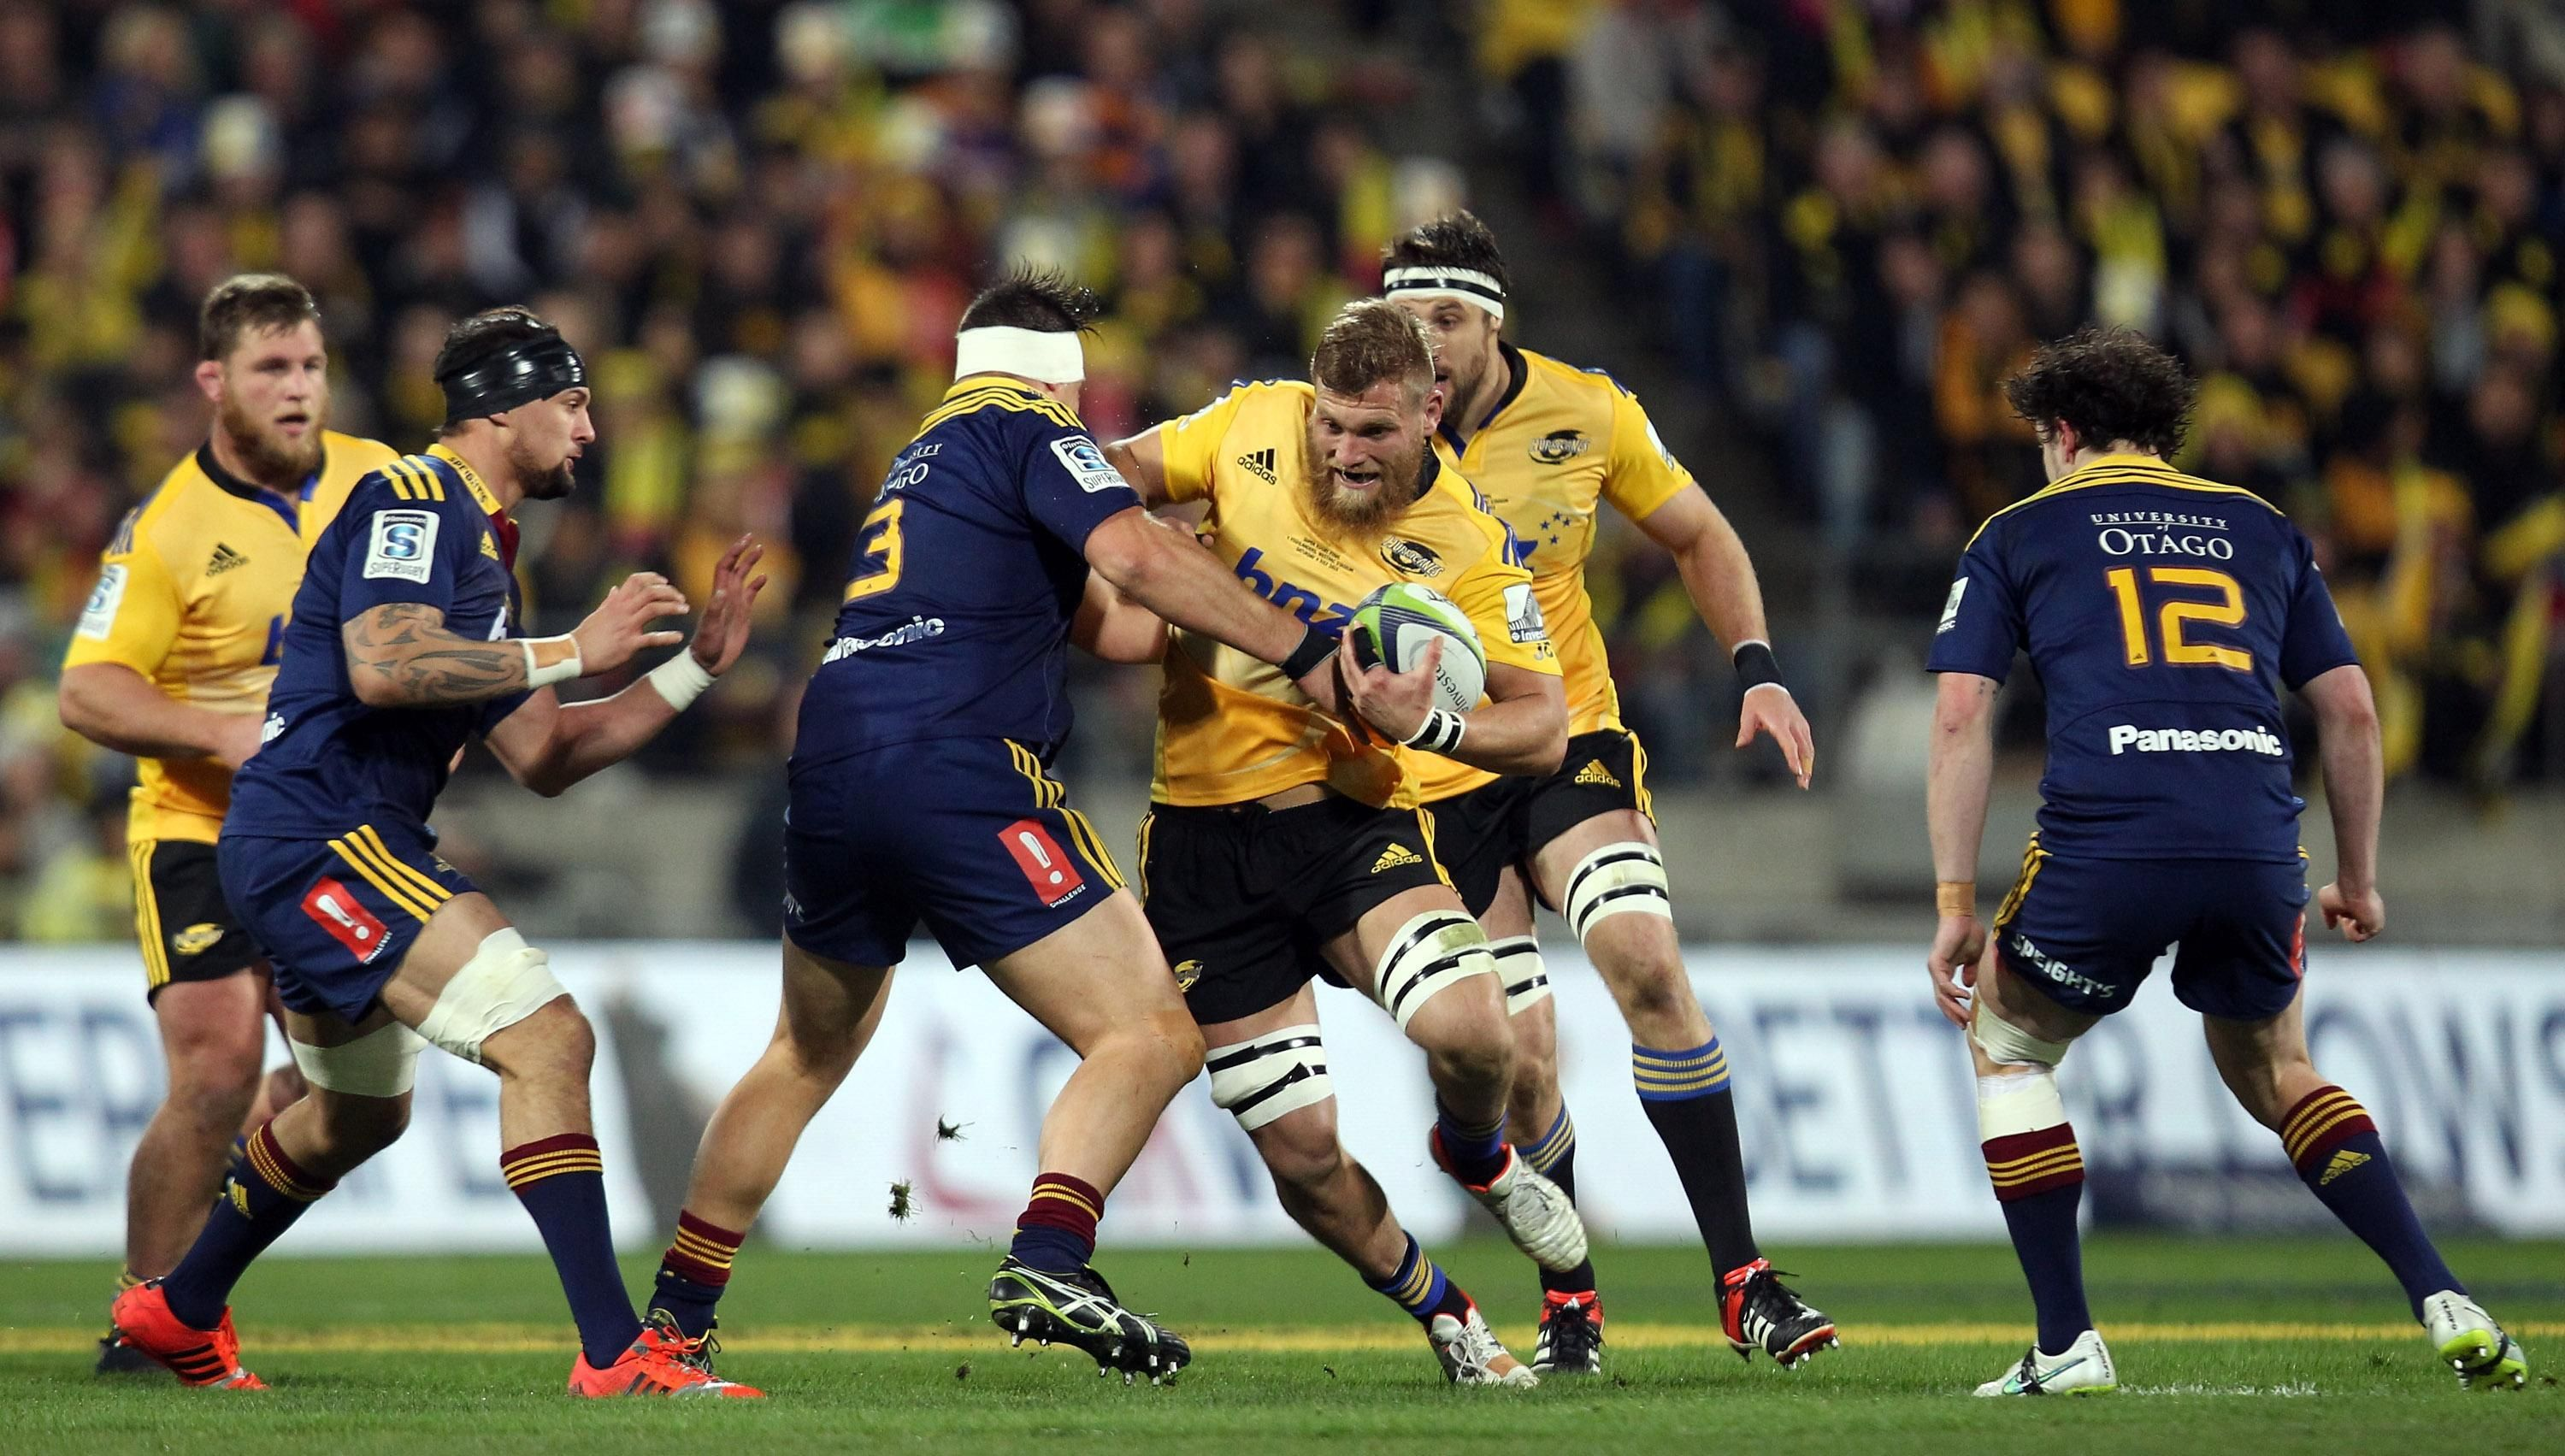 Super rugby 2015, final between hurricanes v highlanders